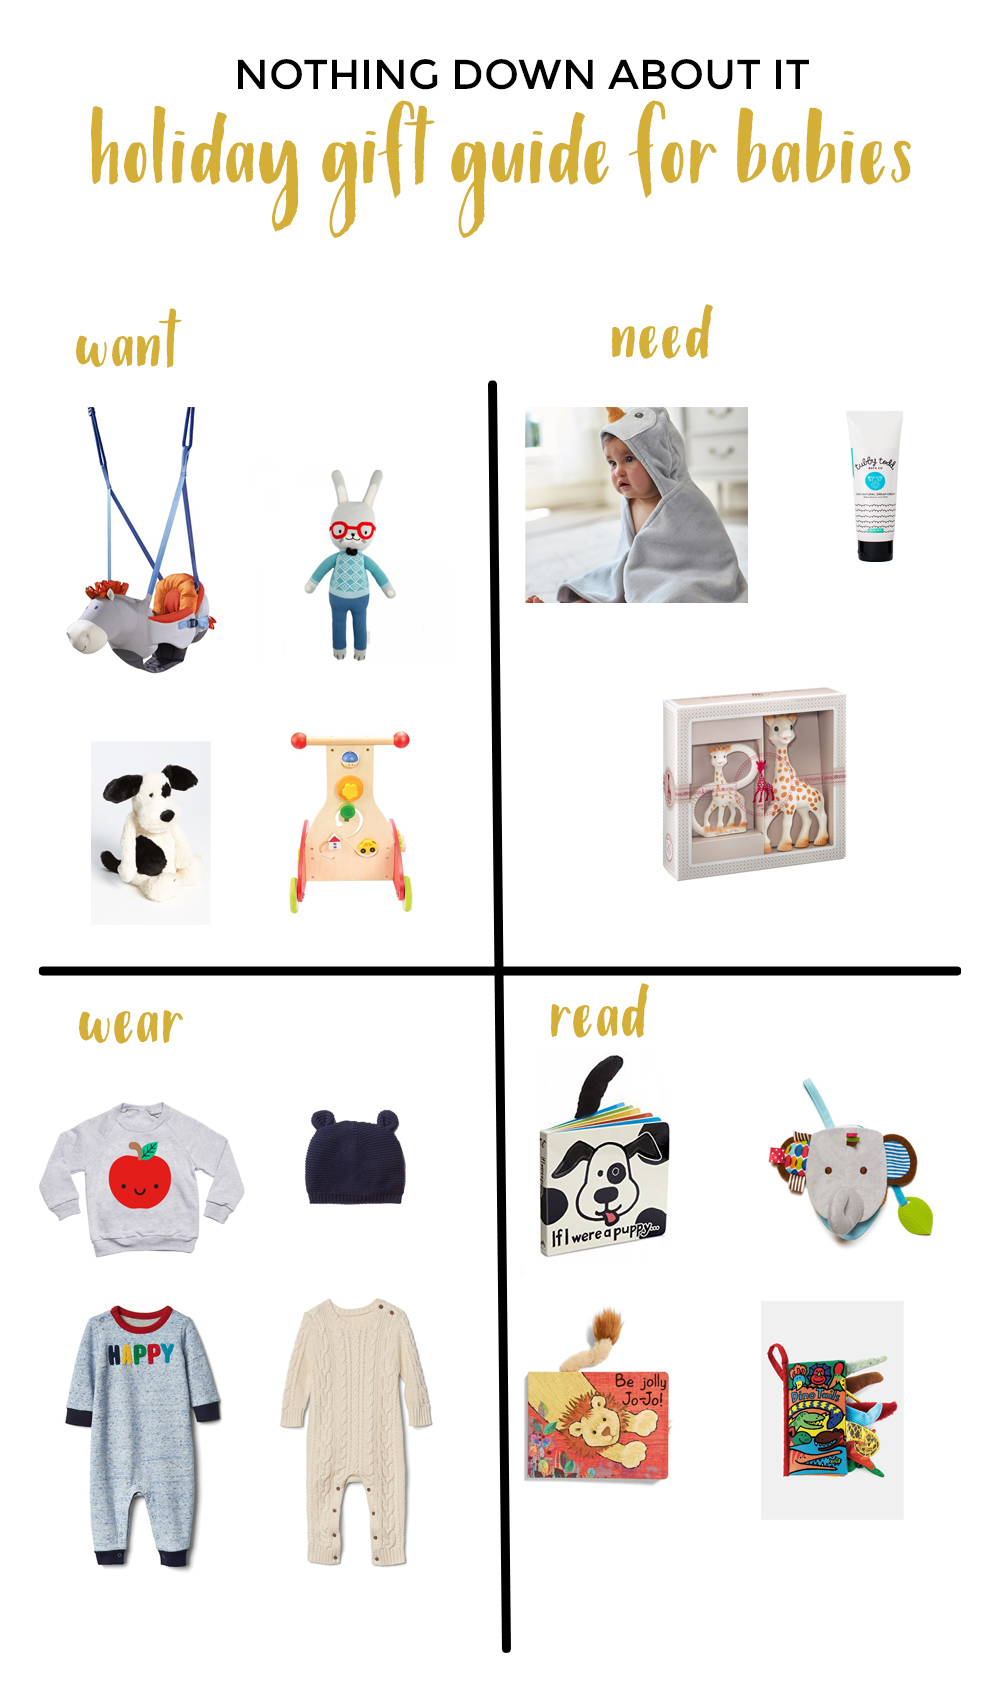 HOLIDAY GIFT GUIDE FOR BABIES